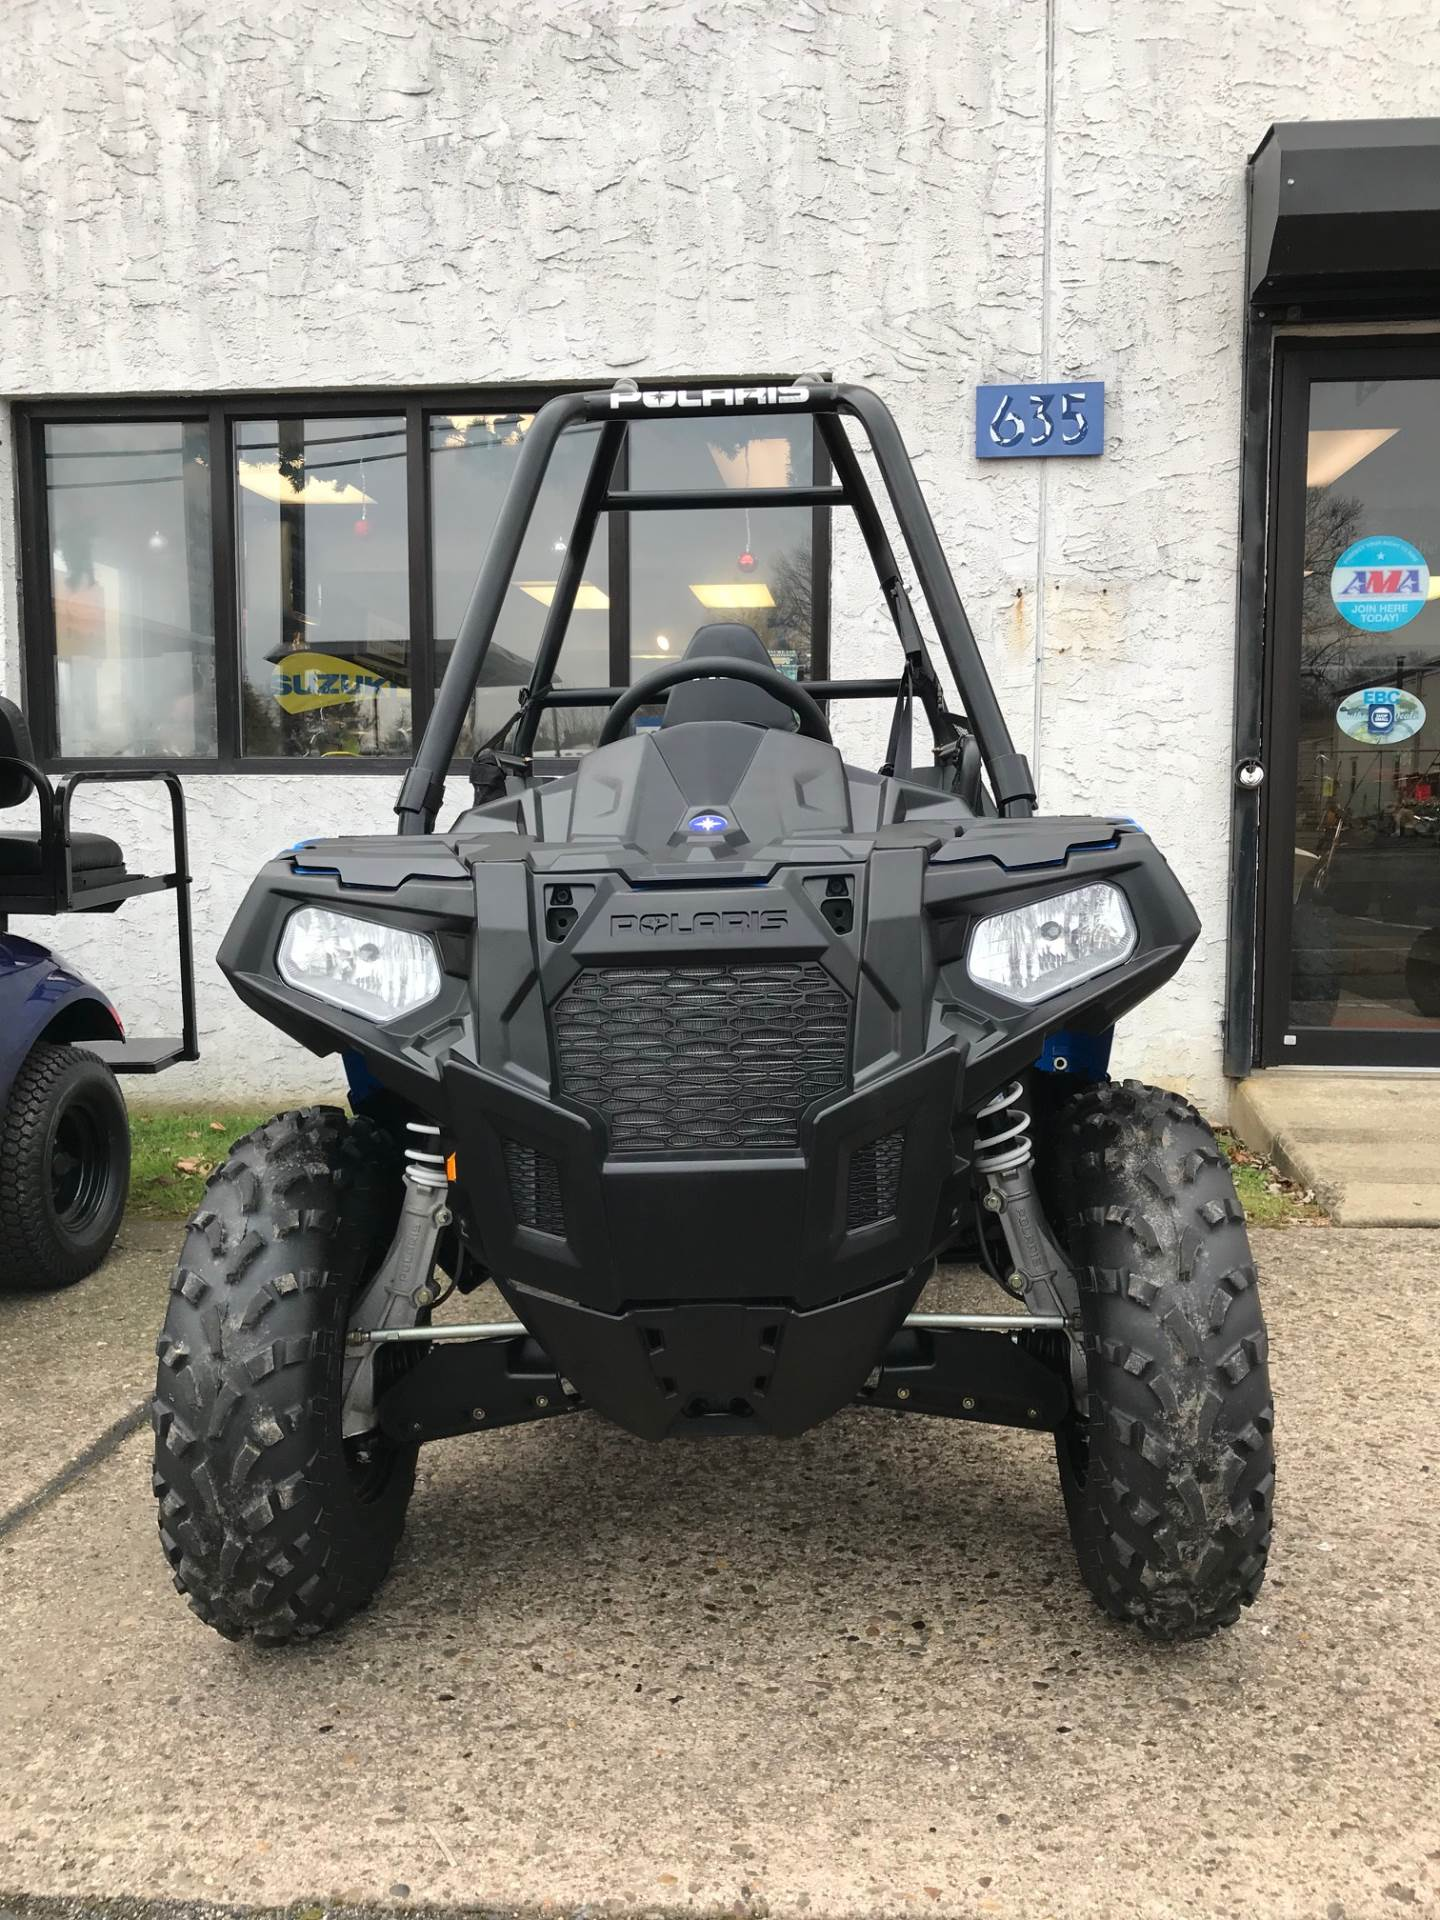 2015 Polaris ACE™ 570 in Trevose, Pennsylvania - Photo 3